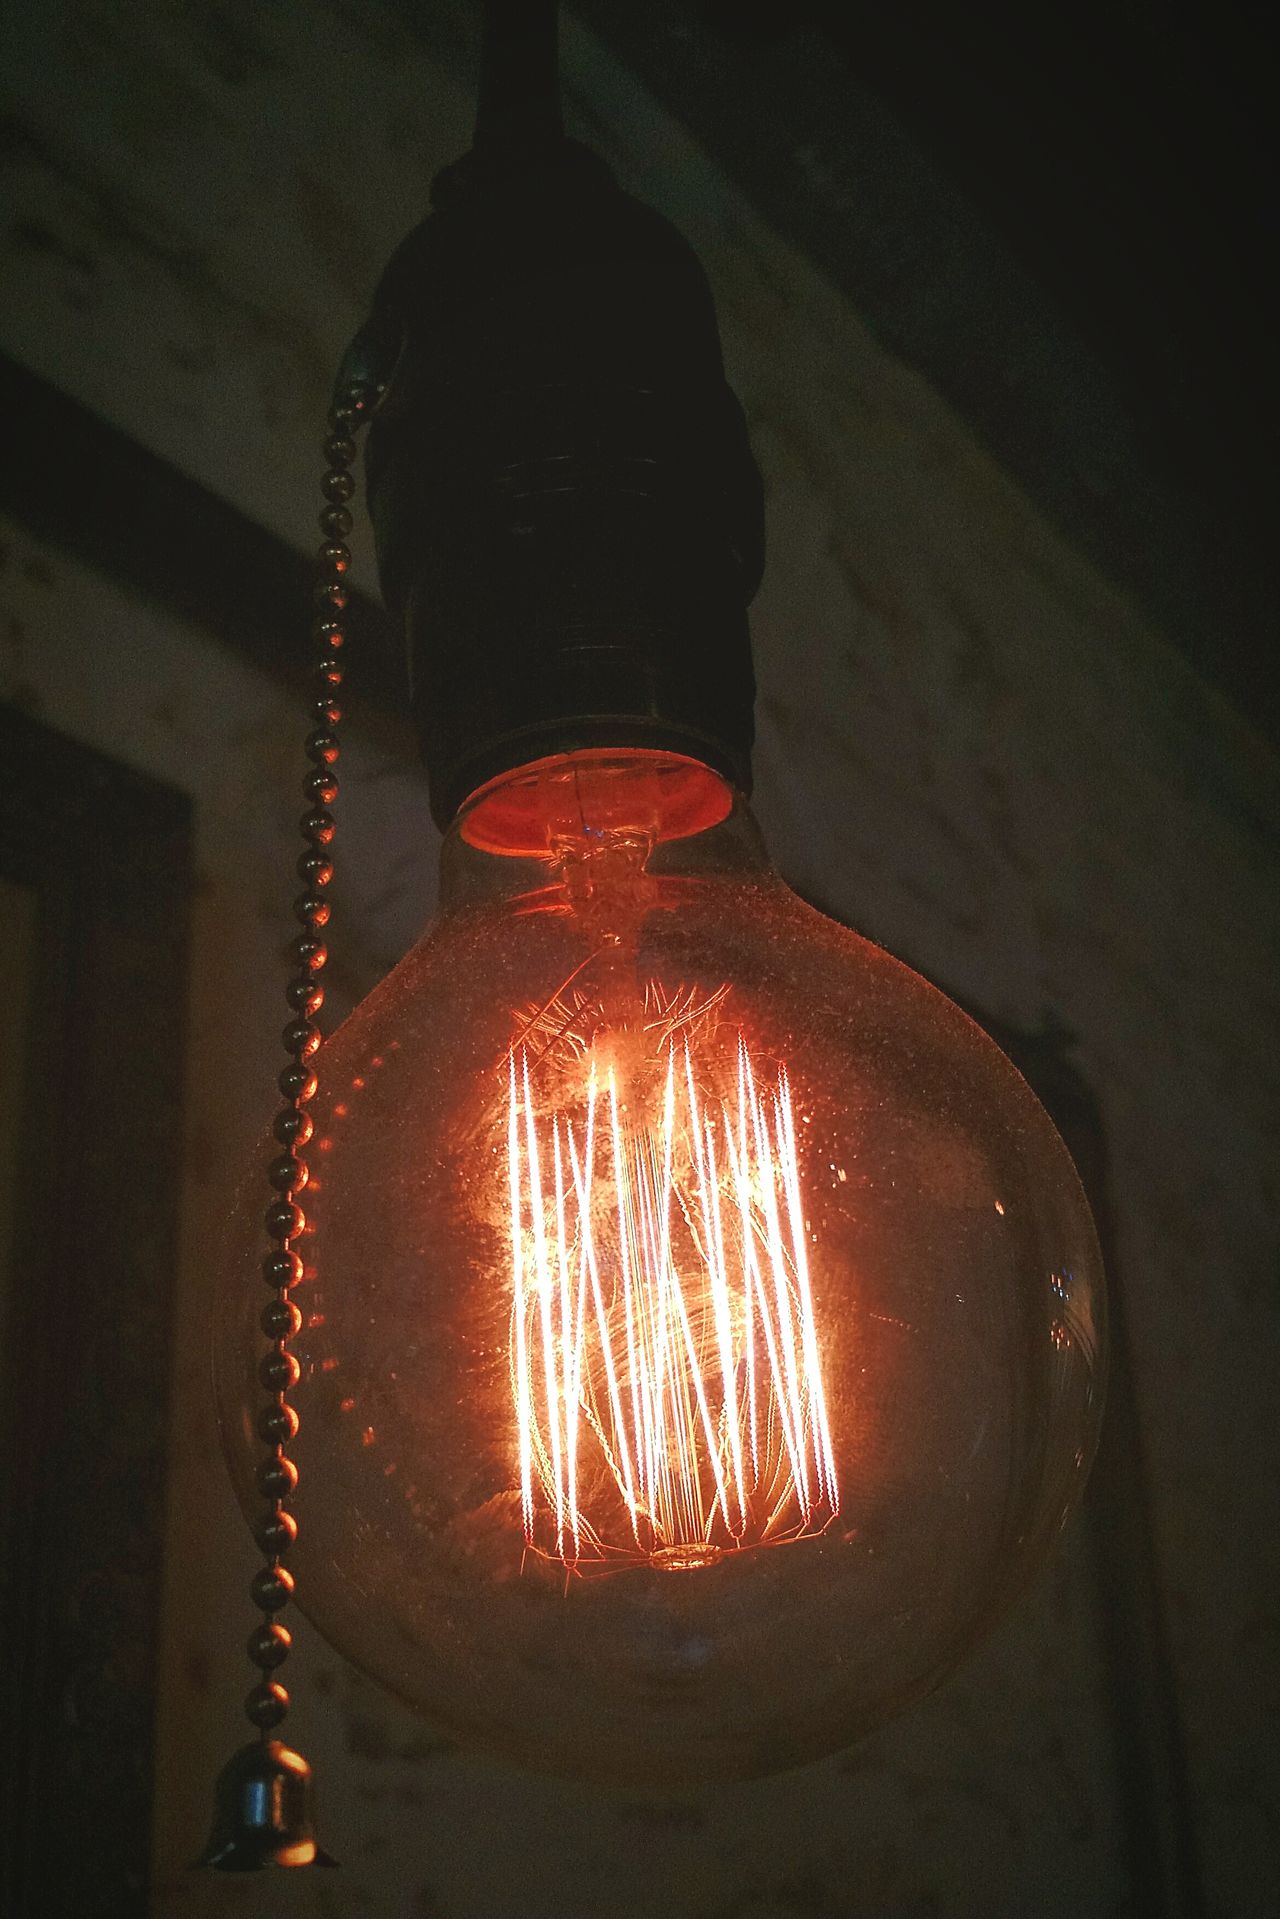 Electricity  Old-fashioned Filament Illuminated Idea Lamp Best Eyeem Shots Vintage Photo Of The Week TBT